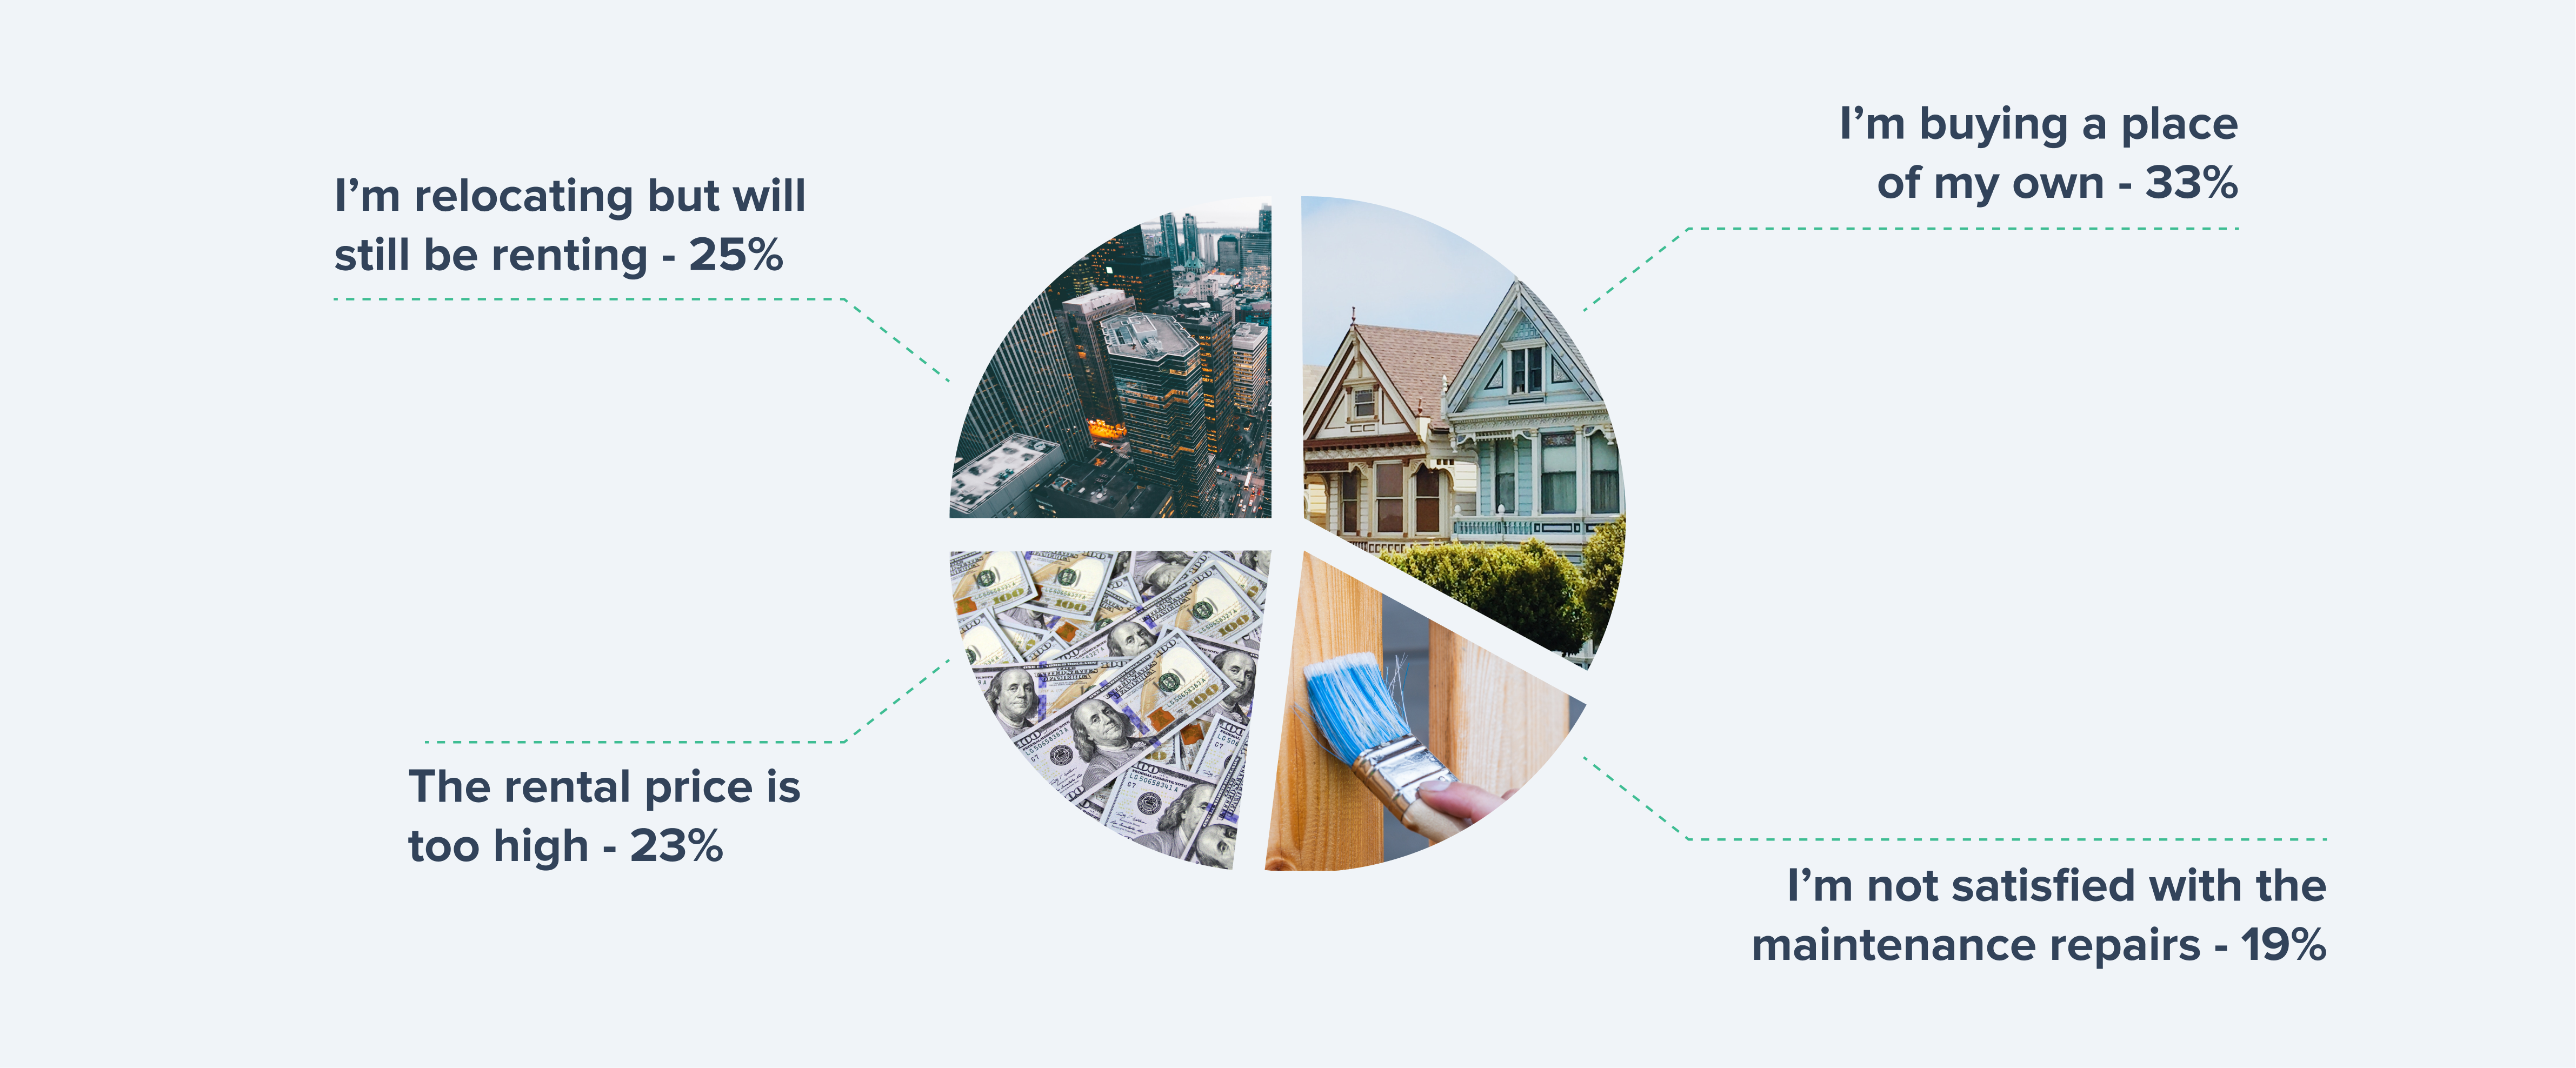 Tenantcloud survey results: rental prices, buying a place of my own, maintainence repairs